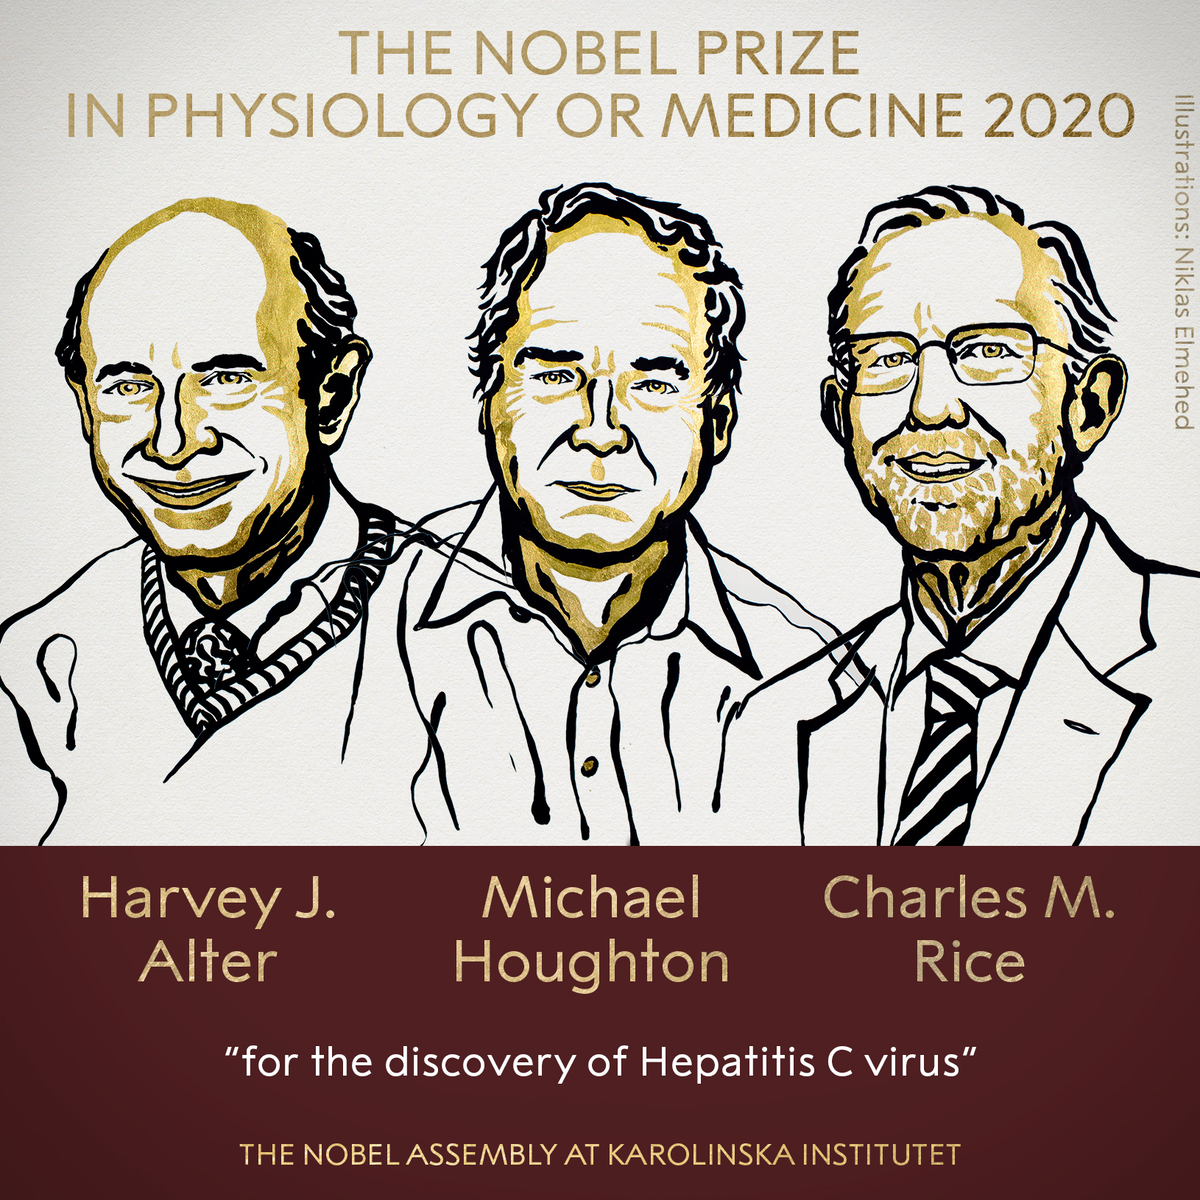 "<a href=""https://www.nobelprize.org/prizes/medicine/2020/summary/"">The 2020 Nobel Prize in Physiology or Medicine has been awarded jointly to Harvey J. Alter, Michael Houghton and Charles M. Rice for the discovery of Hepatitis C virus.</a><P>"